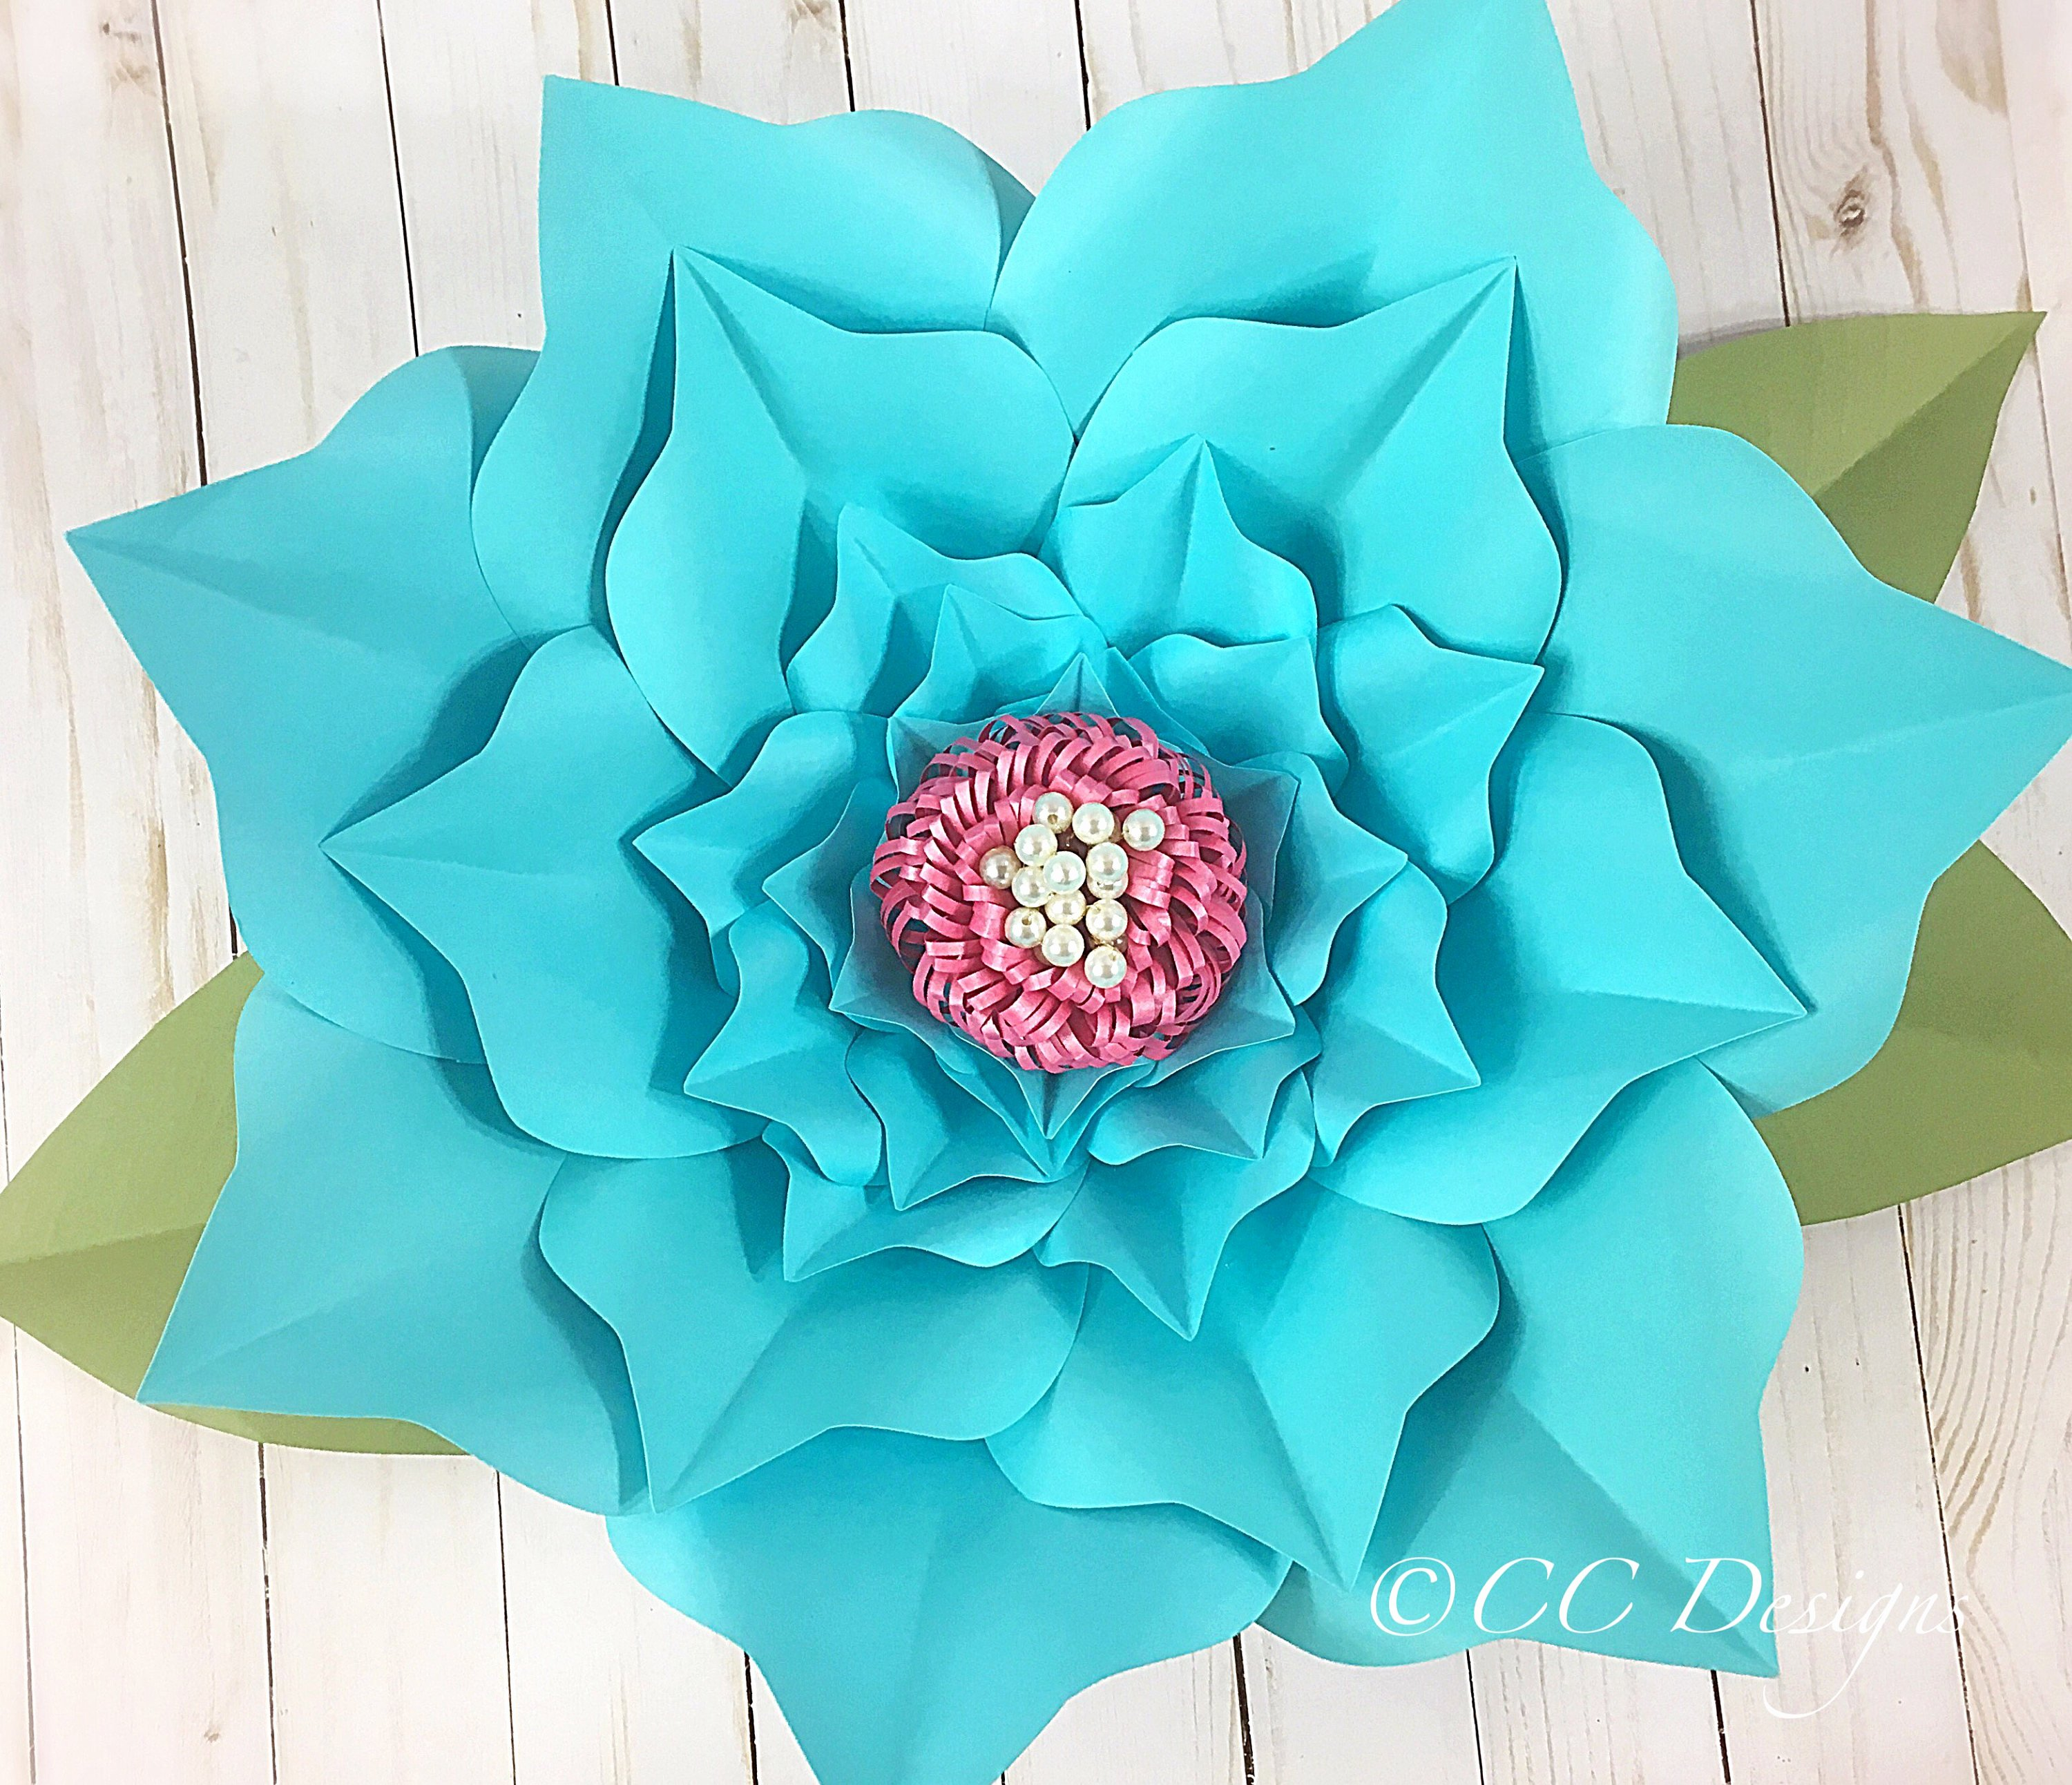 Templates for Paper Flowers Luxury Giant Paper Flower Printable Templates Giant Paper Flowers